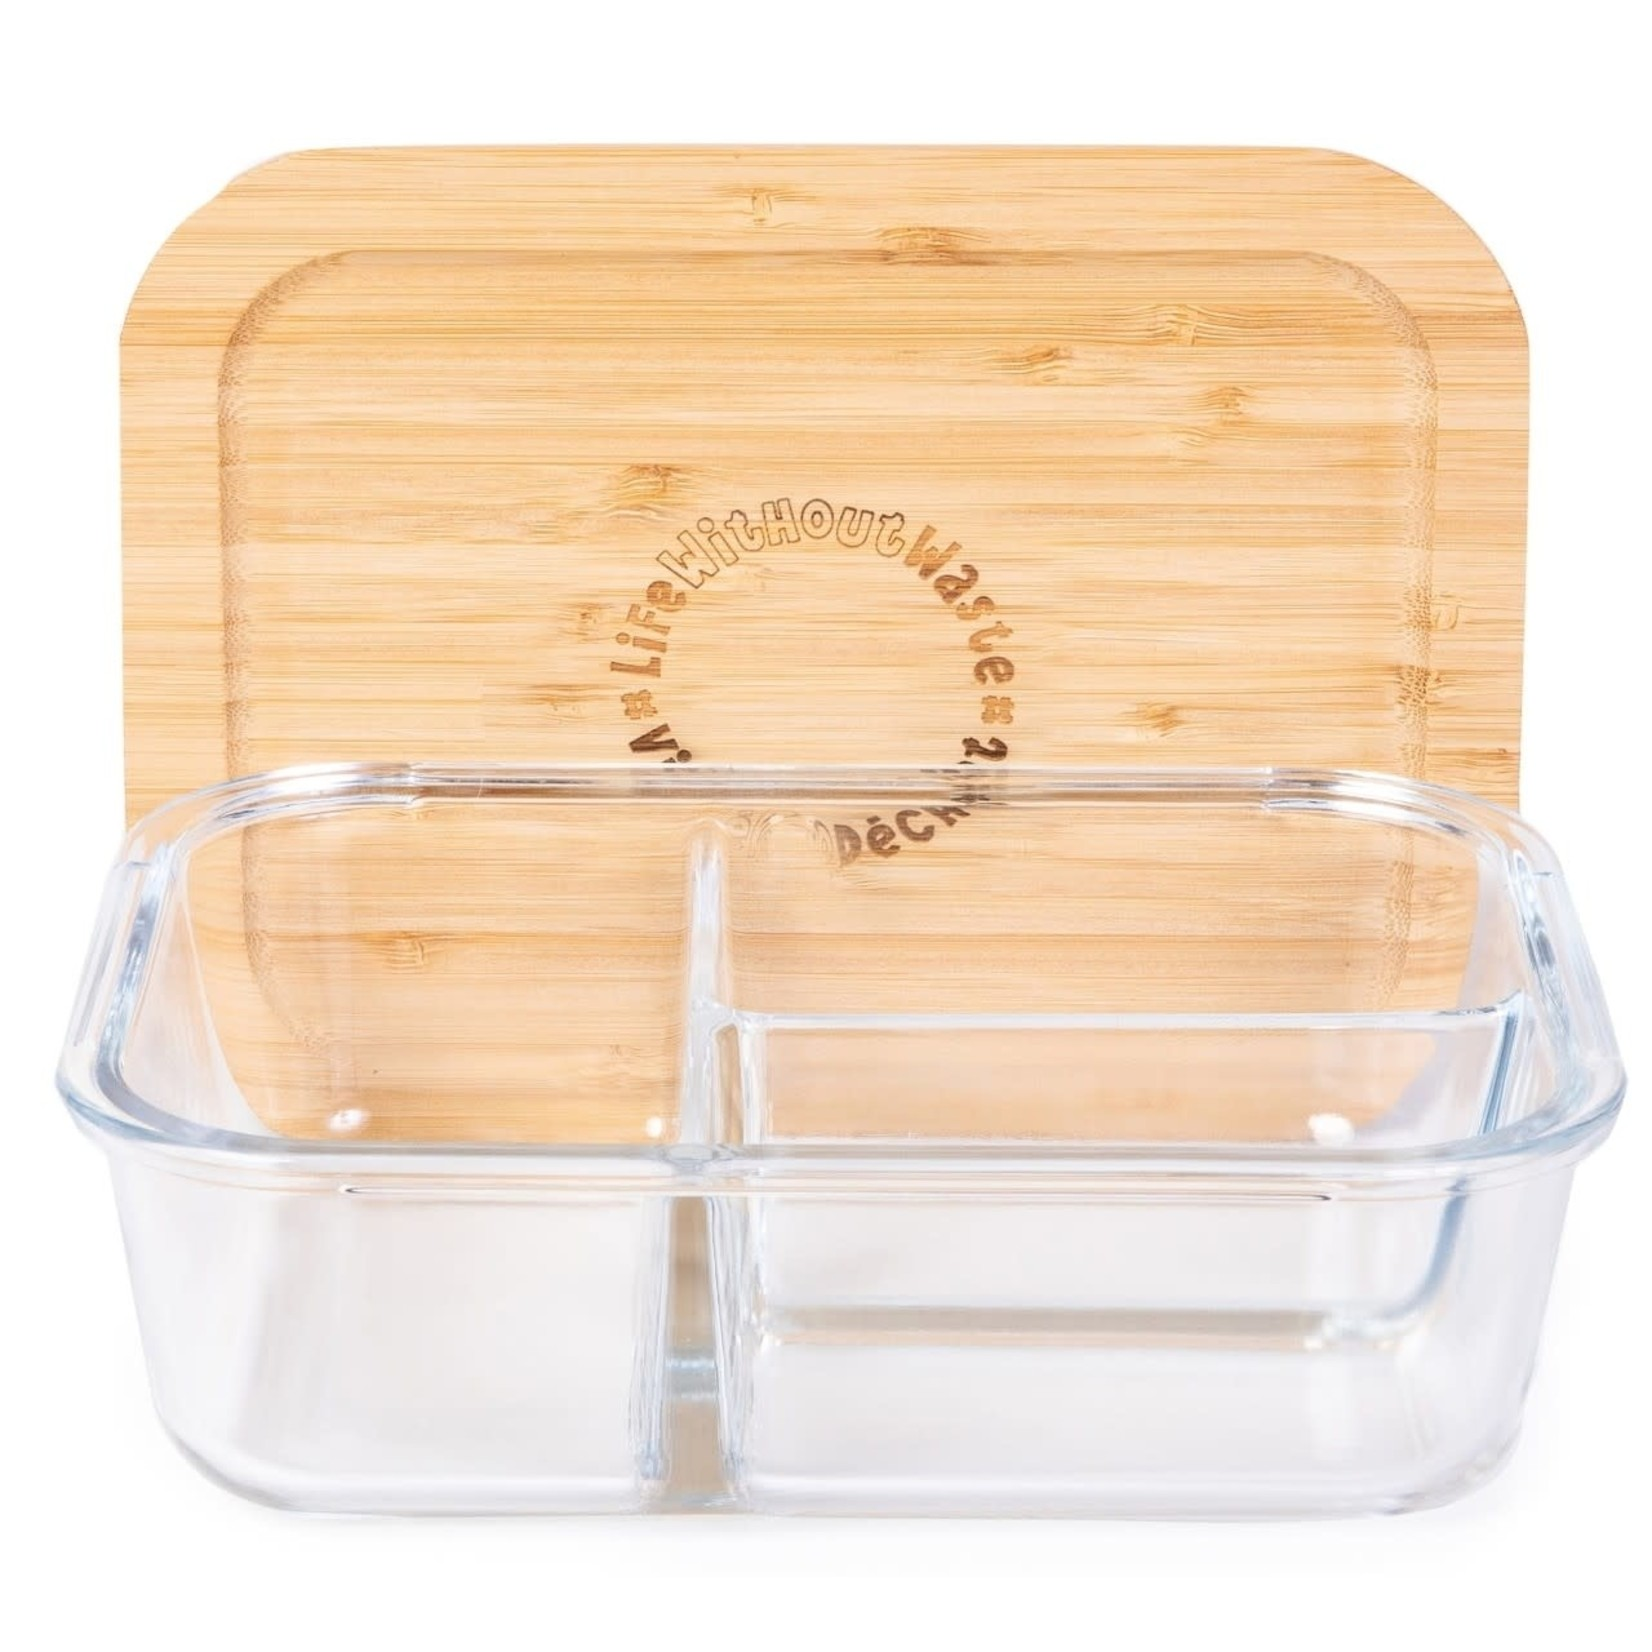 LIFE WITHOUT WASTE DIVIDED GLASS CONTAINER - LARGE 3 COMPARTMENT